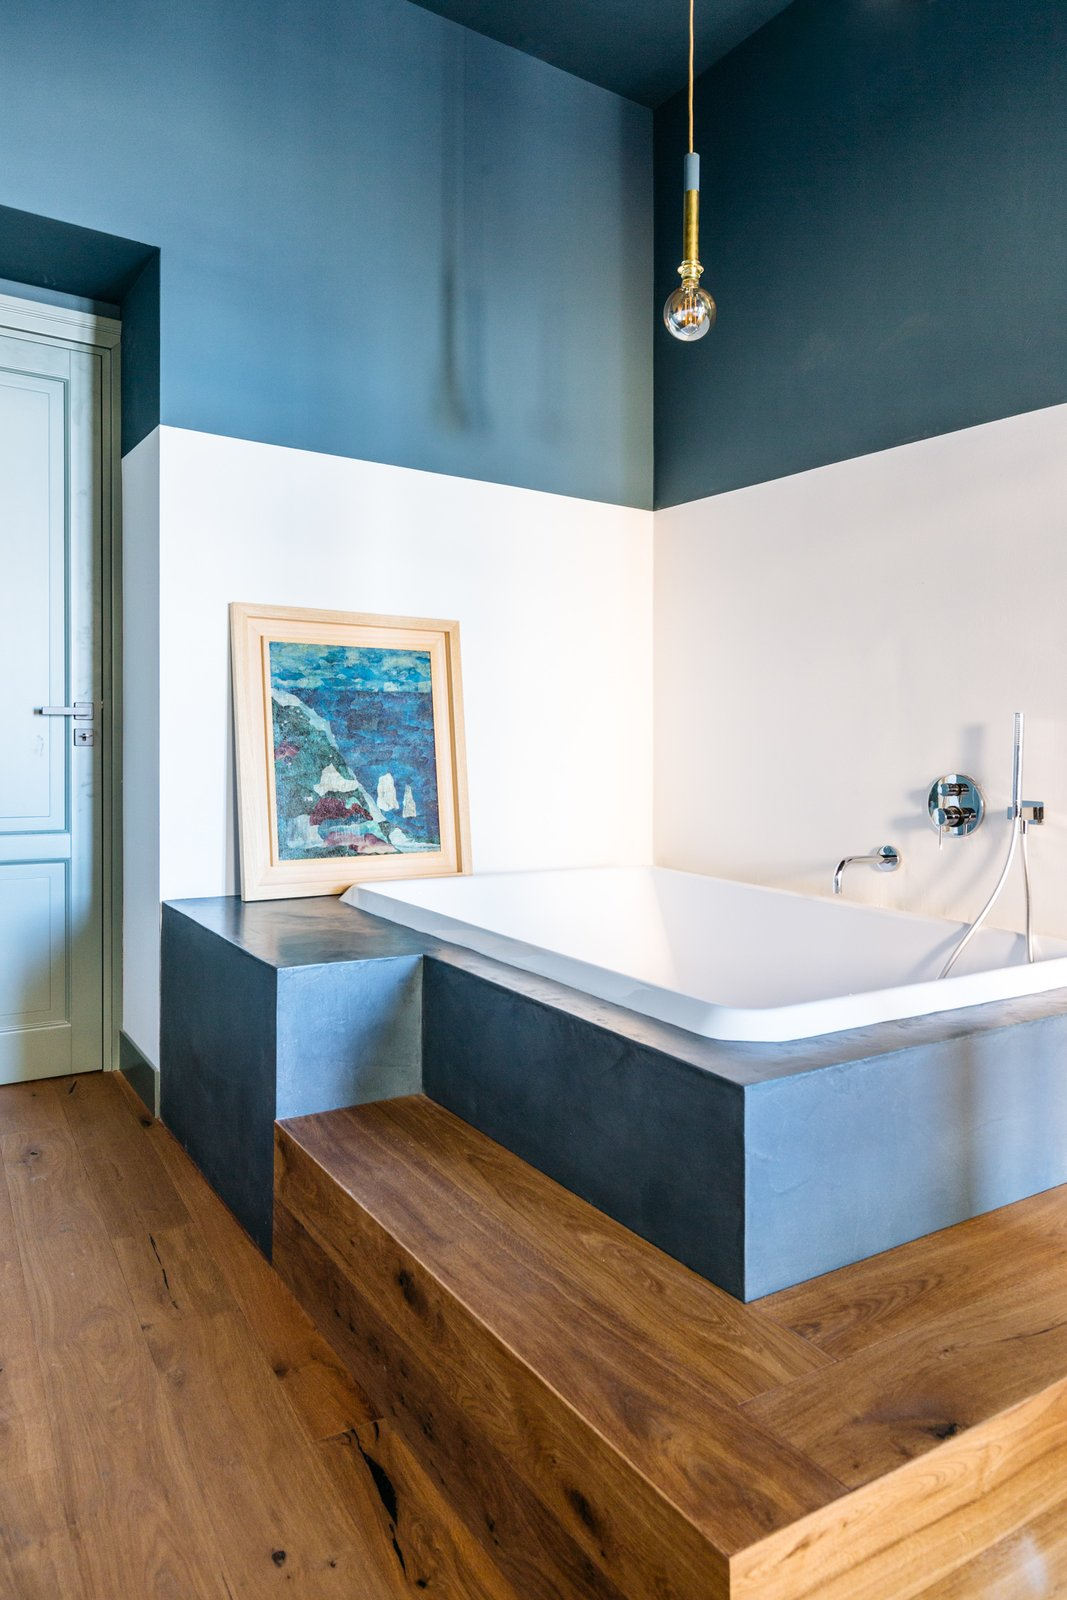 Bath, Medium Hardwood, Soaking, Pendant, and Undermount A beautifully renovated apartment in the capital of Sicily echoes the colors  and textures of the sea. The bathroom in particular evokes water, with textured tadelakt cement and Wet System Wall & Deco wallpaper.  Bath Undermount Medium Hardwood Soaking Photos from A Renovated Apartment in an 18th-Century Sicilian Building Pays Homage to the Sea